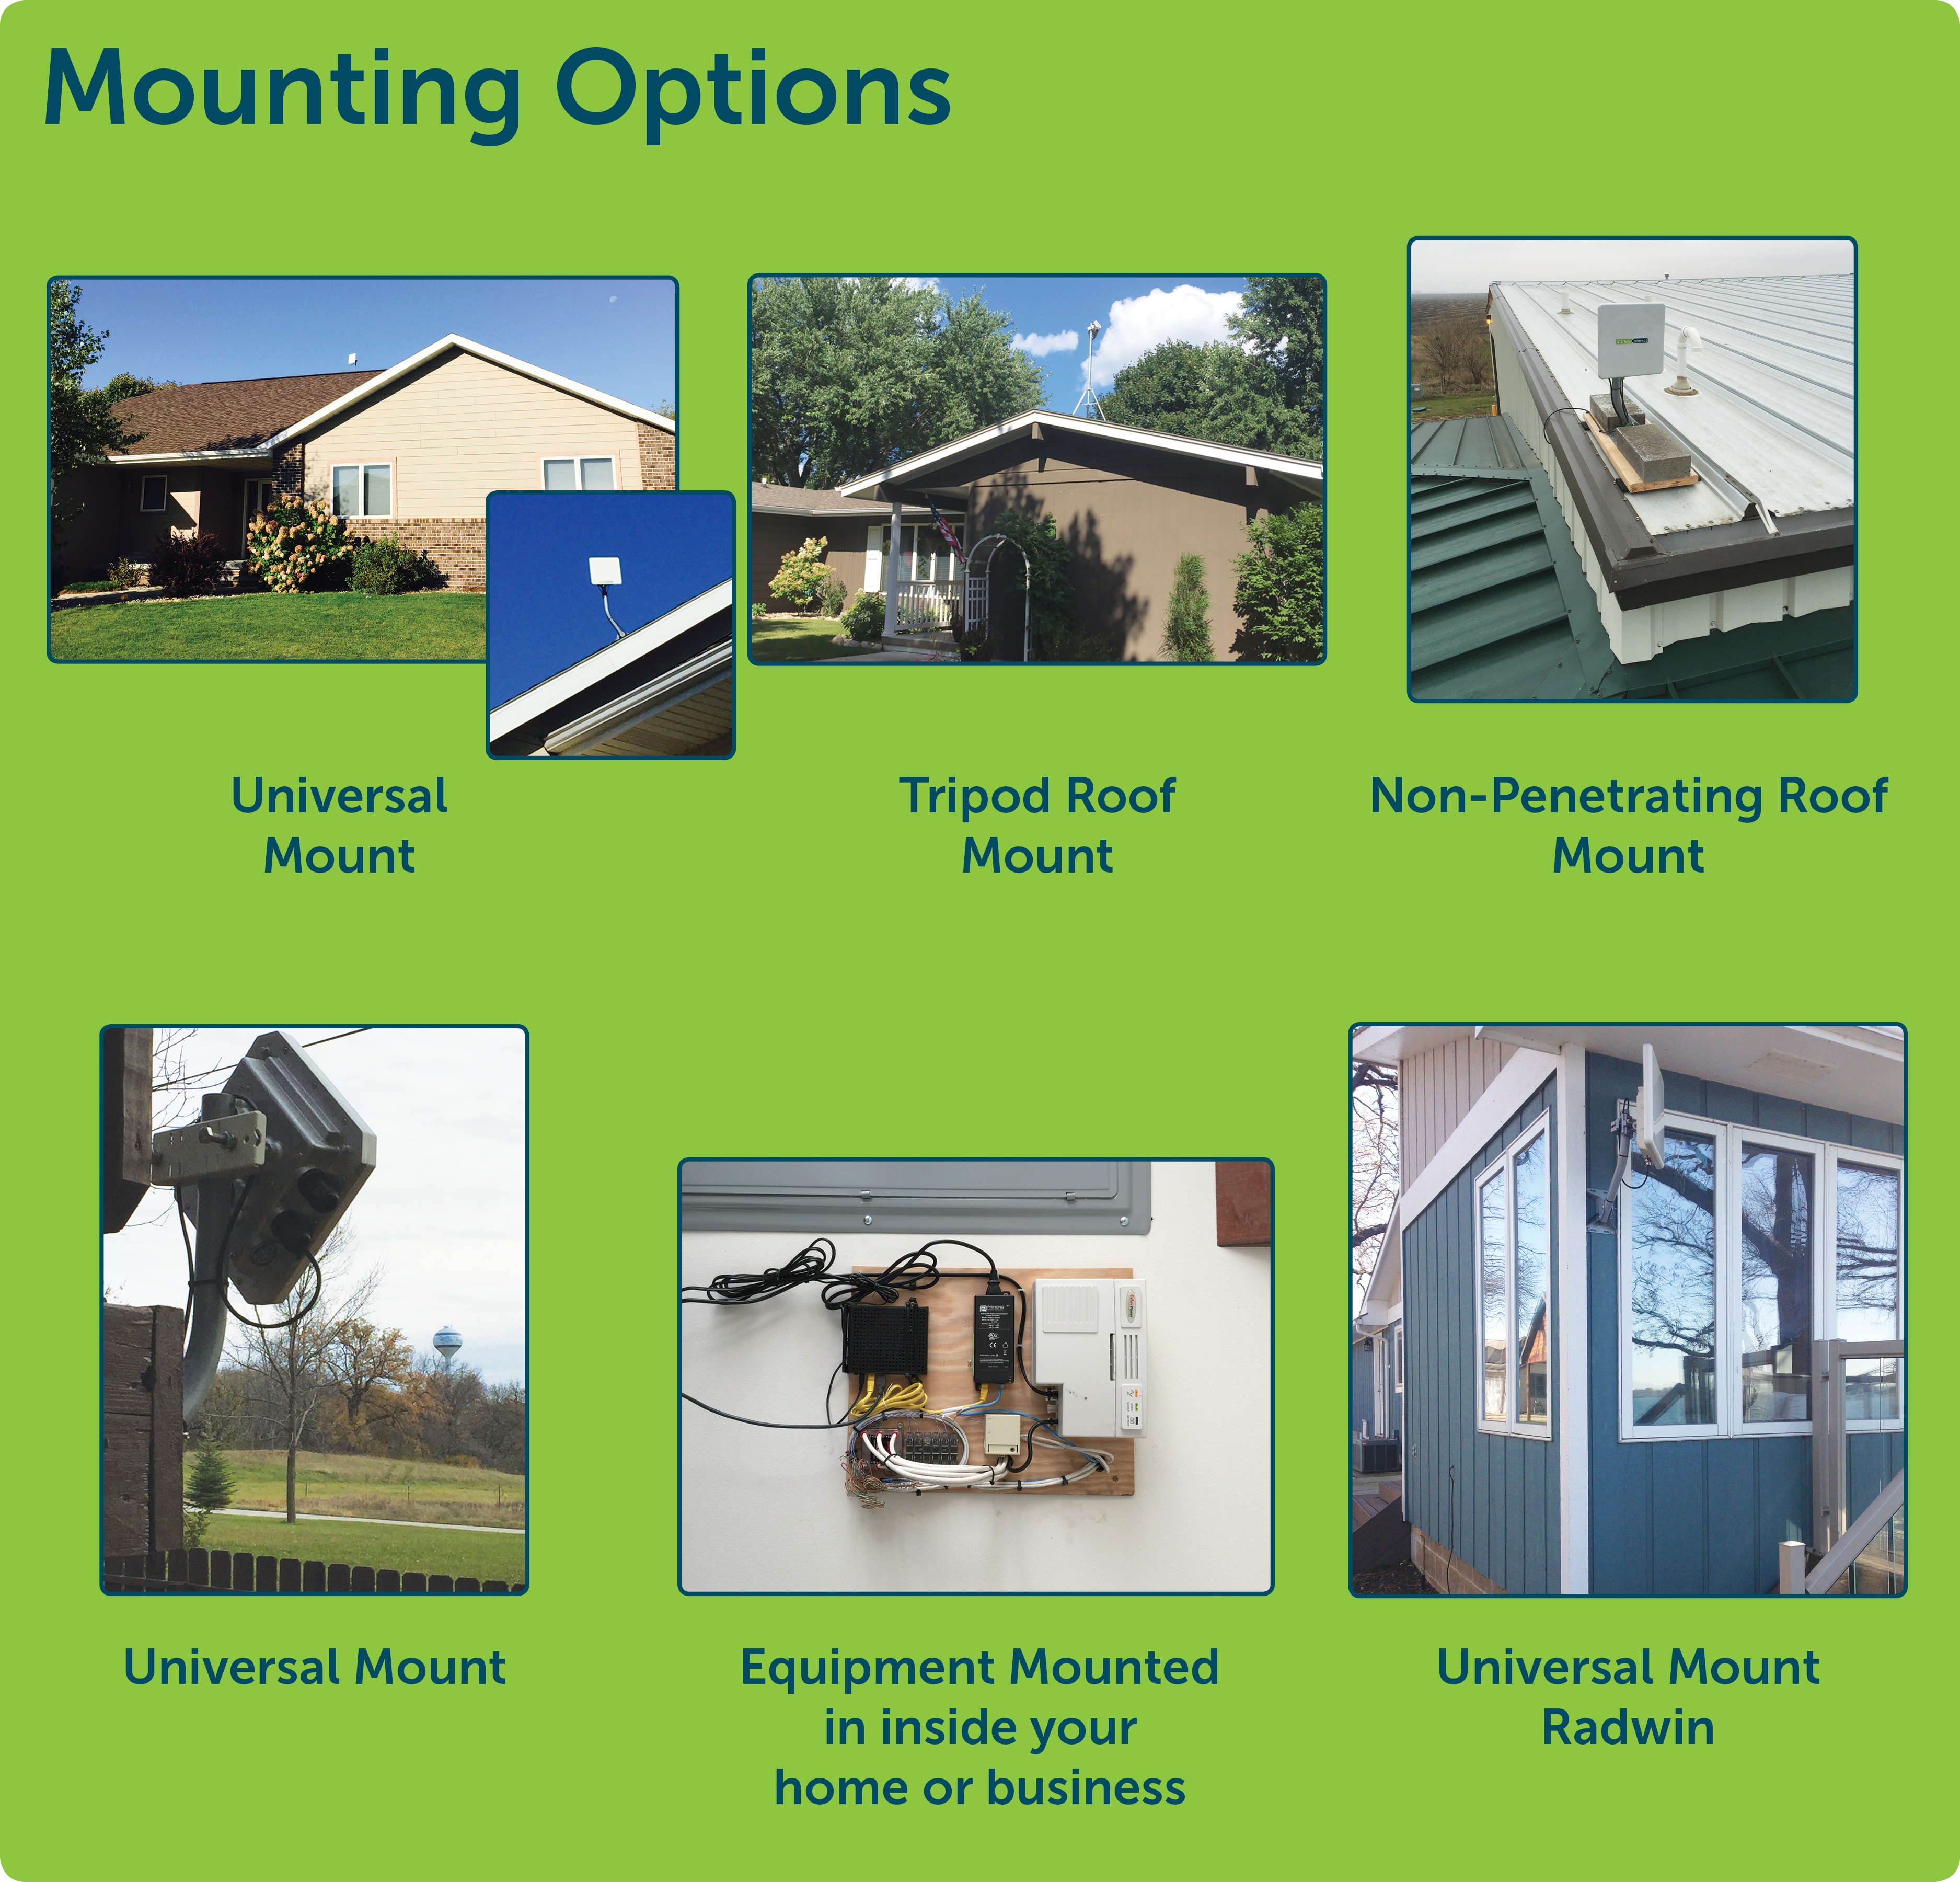 Mounting Options March 2019